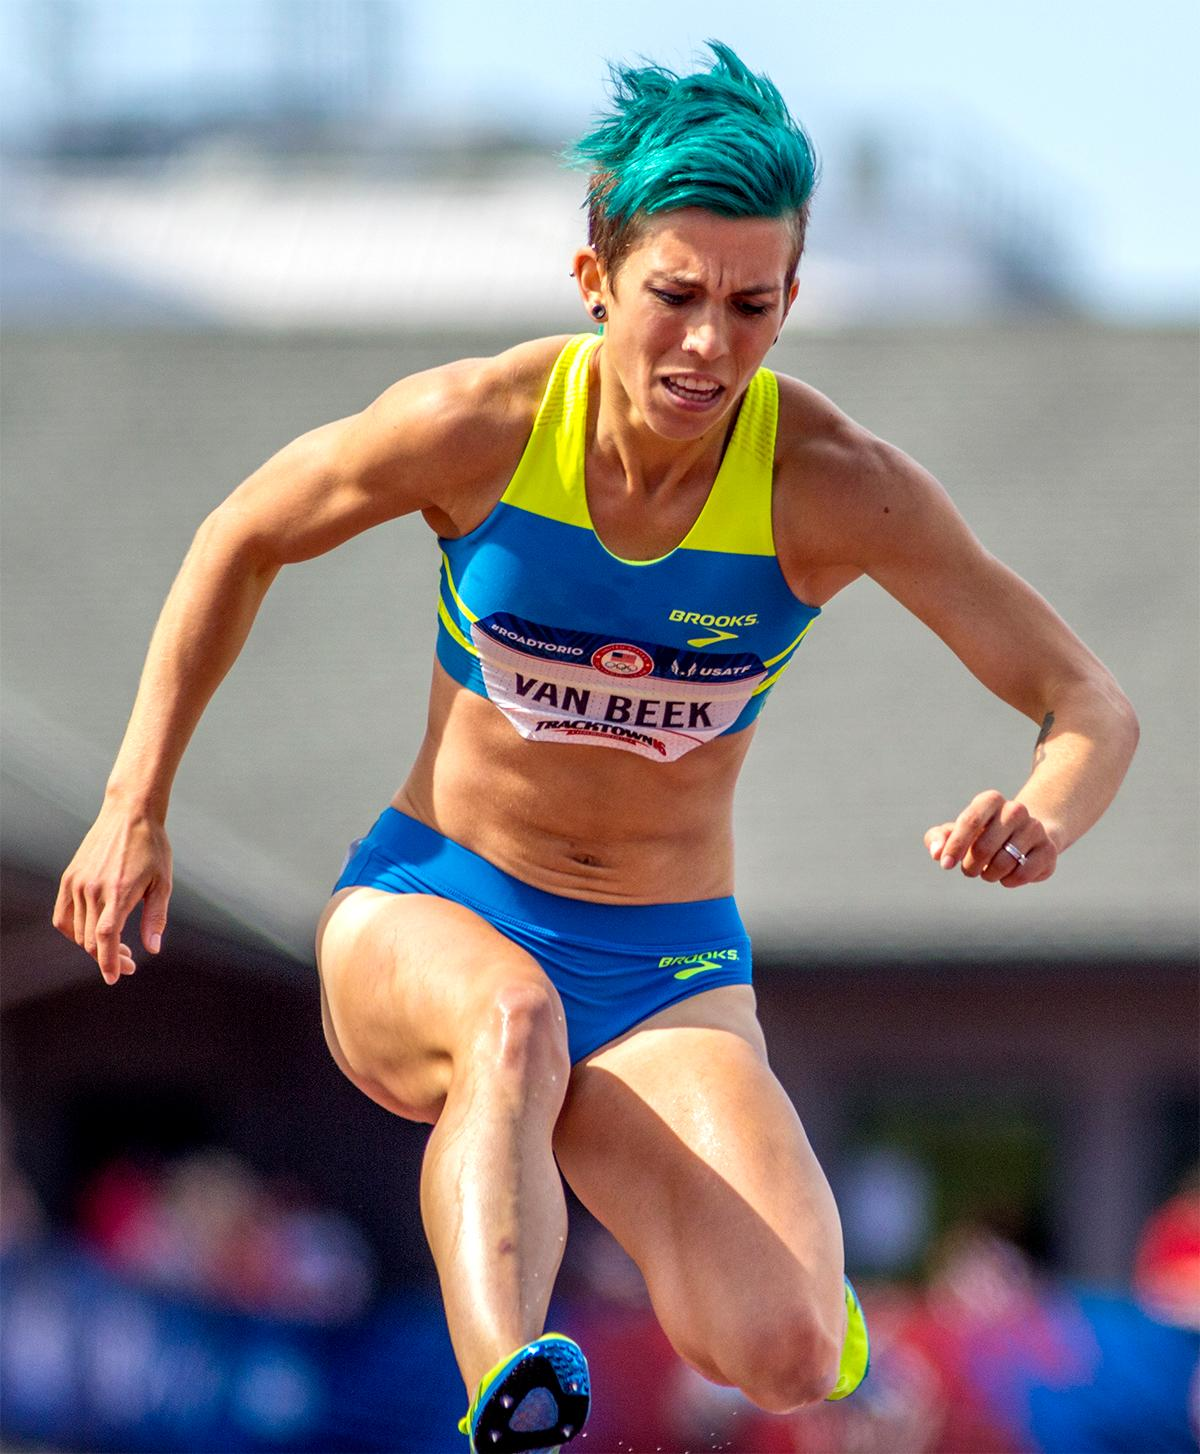 Brooks' Maddie Beek ensured she would catch people's eyes in the 3,000 meter steeplechase when she decided to go with a bright turquoise blue for her hair color. Photo by August Frank, Oregon News Lab